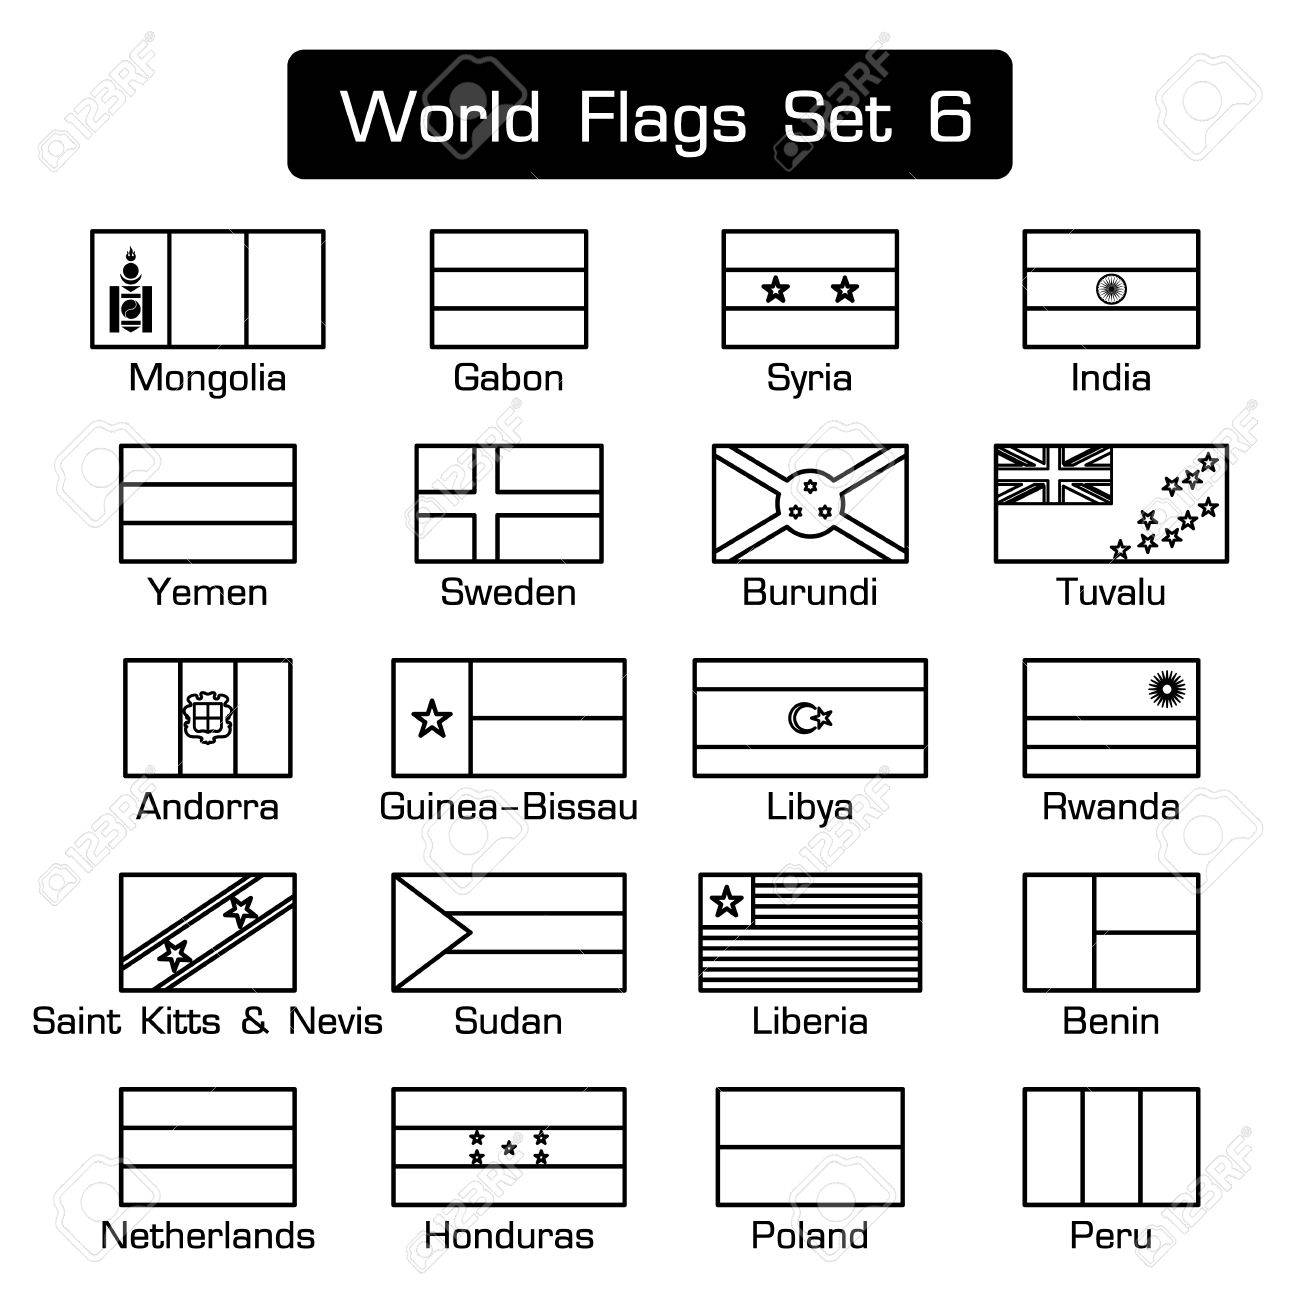 World flags set 6 . simple style and flat design . thick outline . - 68413643